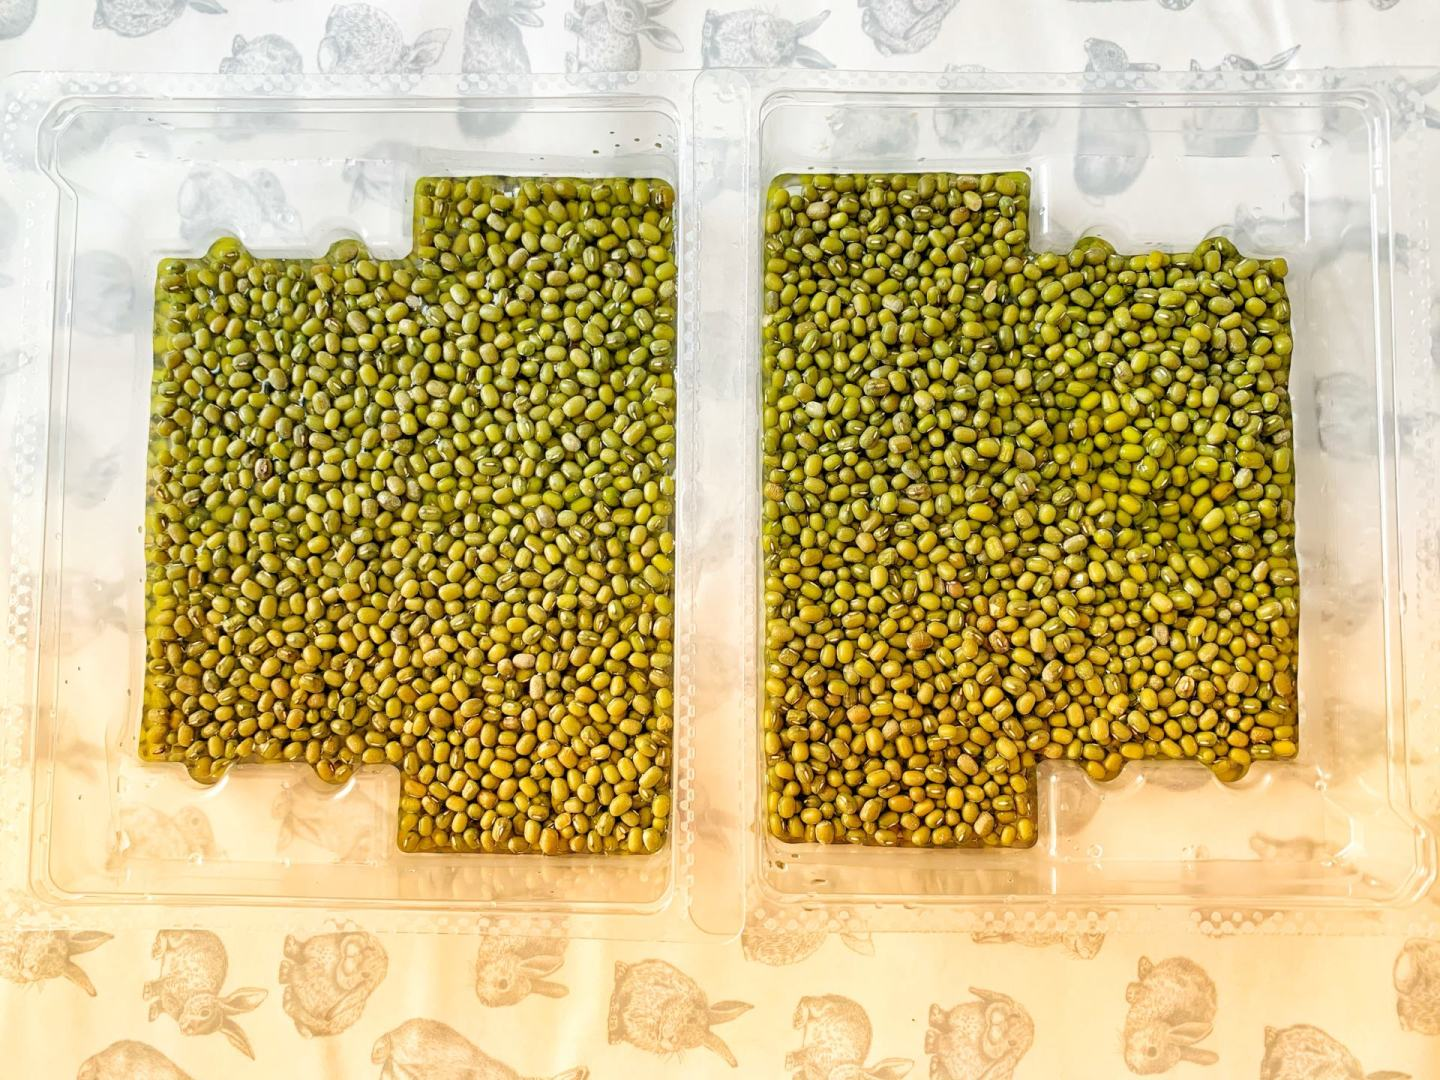 Mung beans in a tray for Persian New Year